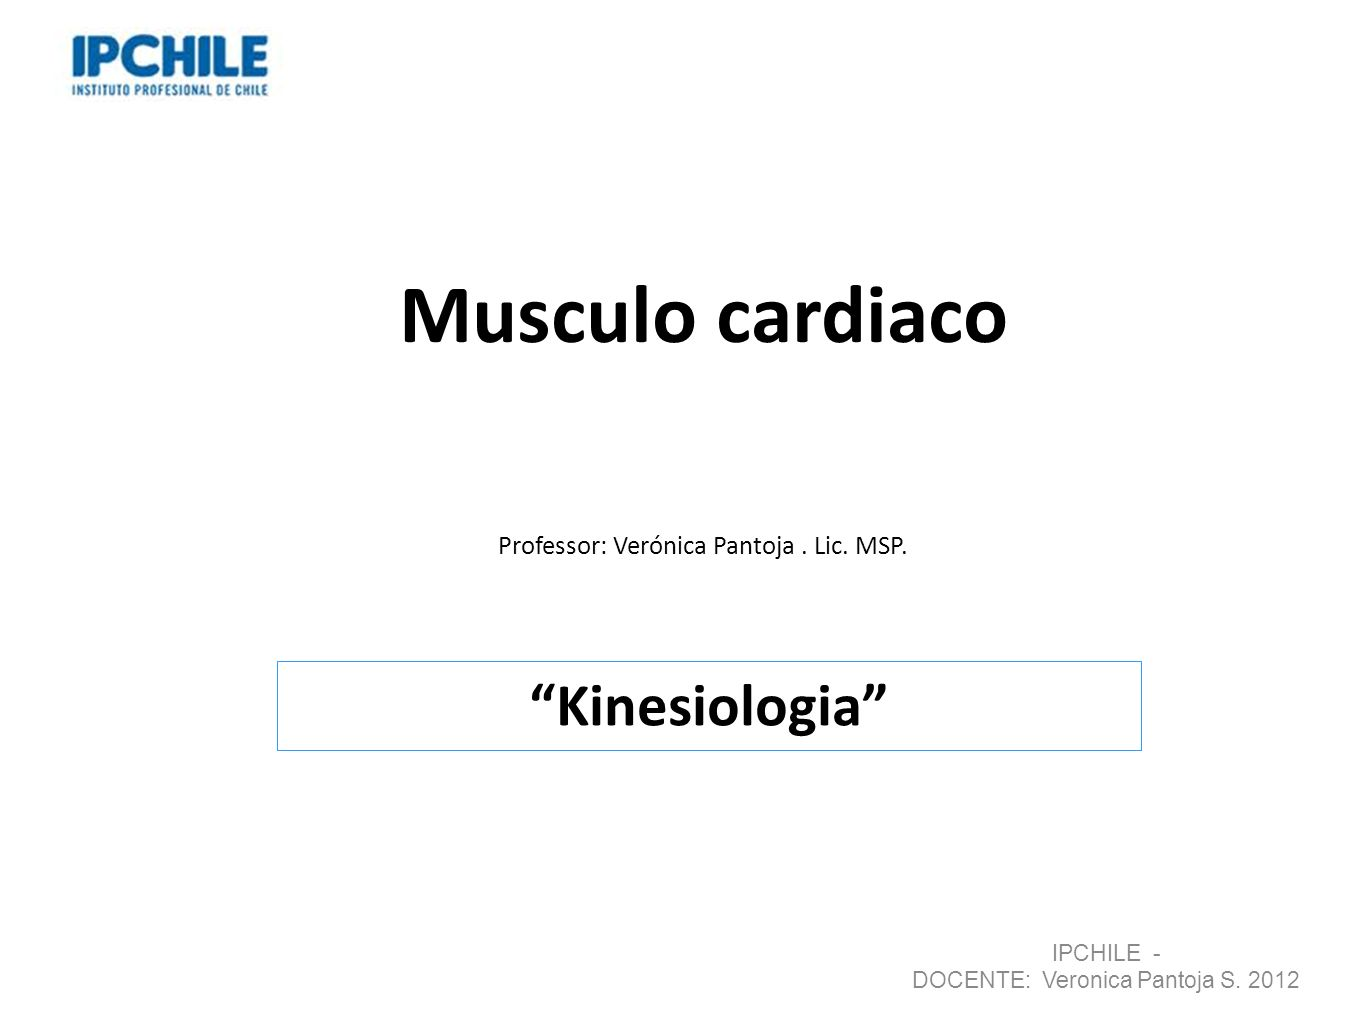 Musculo cardiaco Kinesiologia